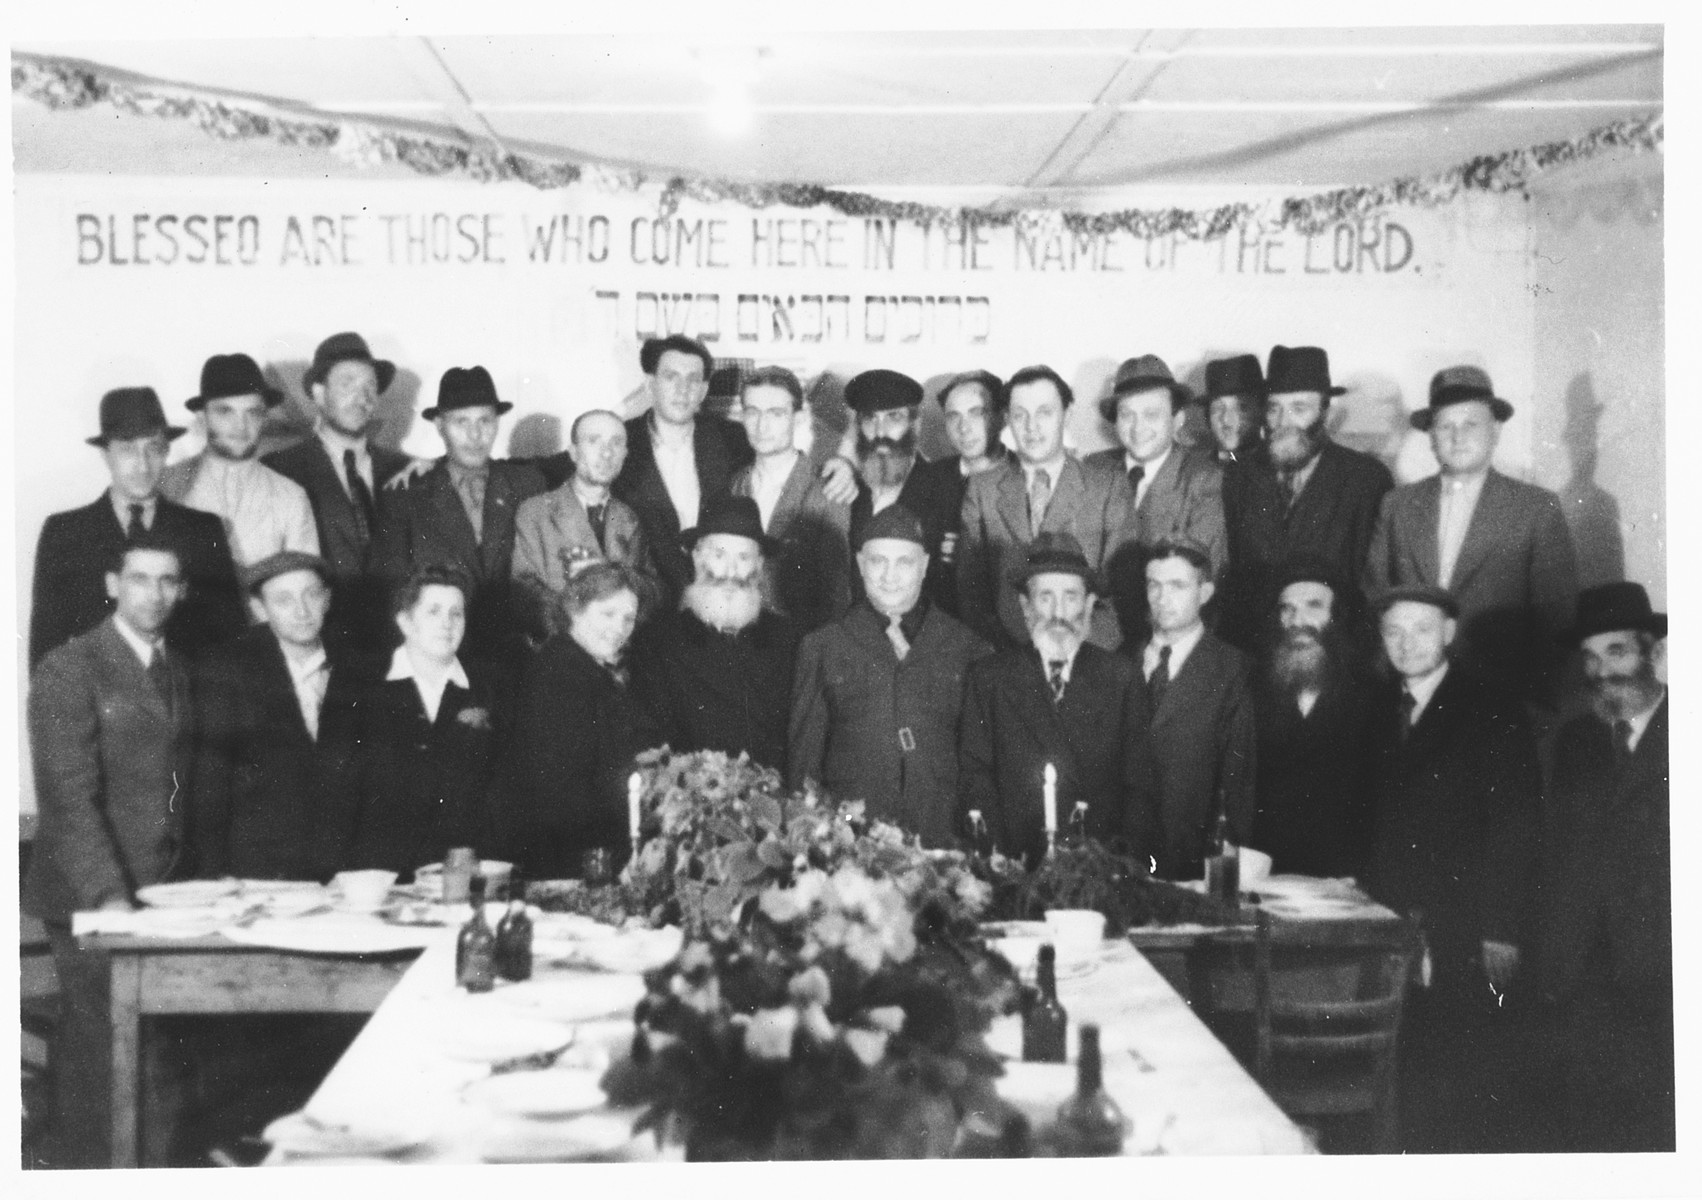 UNRRA camp director Harold Fishbein poses with a group of religious Jews at a holiday celebration in the Schlachtensee displaced persons camp.  Harold Fishbein is standing in the front row center, between the two bearded men.  Also pictured is Benjamin Holzer in the first row, on the far left.